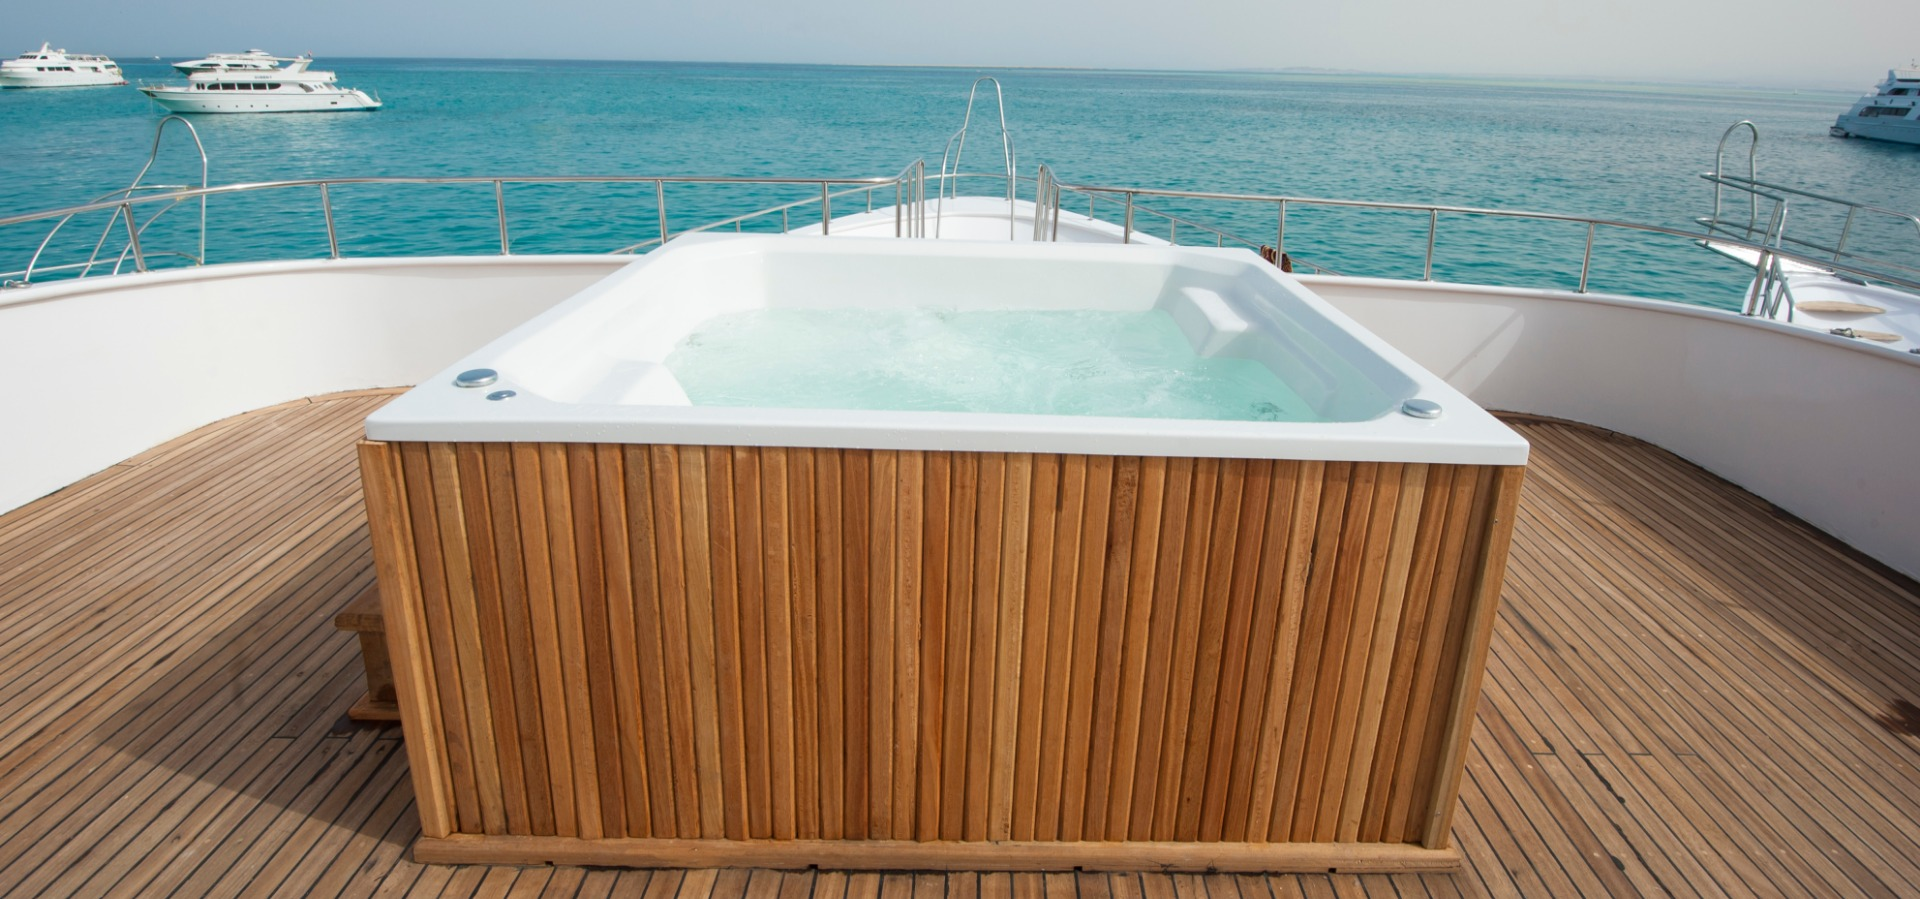 M/y blue Horizon liveaboard hot tub